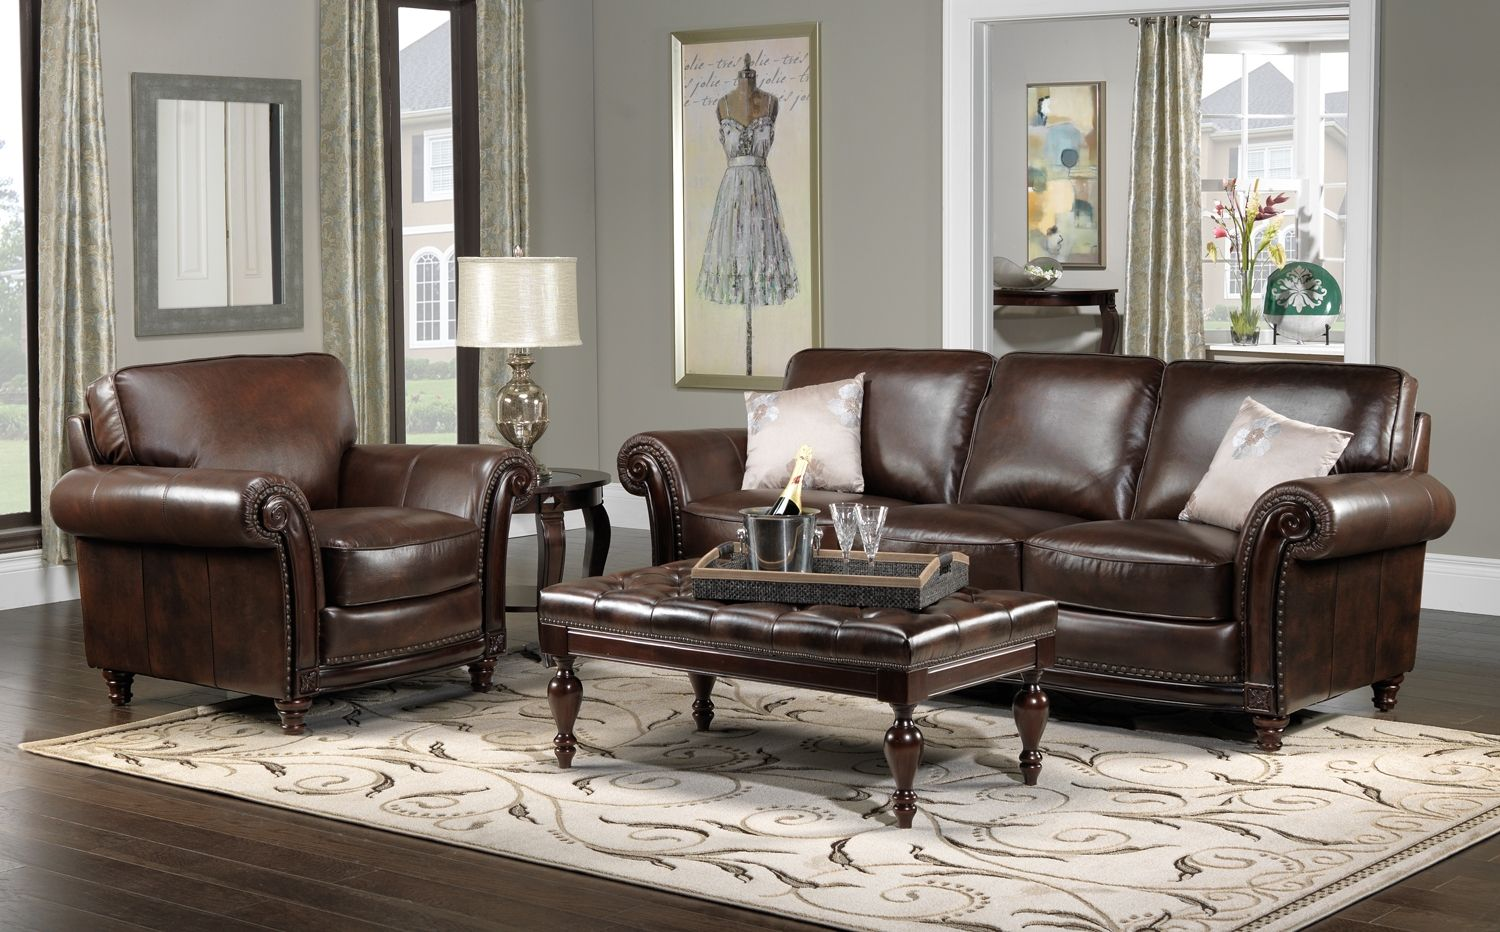 Living Room Ideas Brown Furniture how to decorate with brown leather furniture klein on. decorating